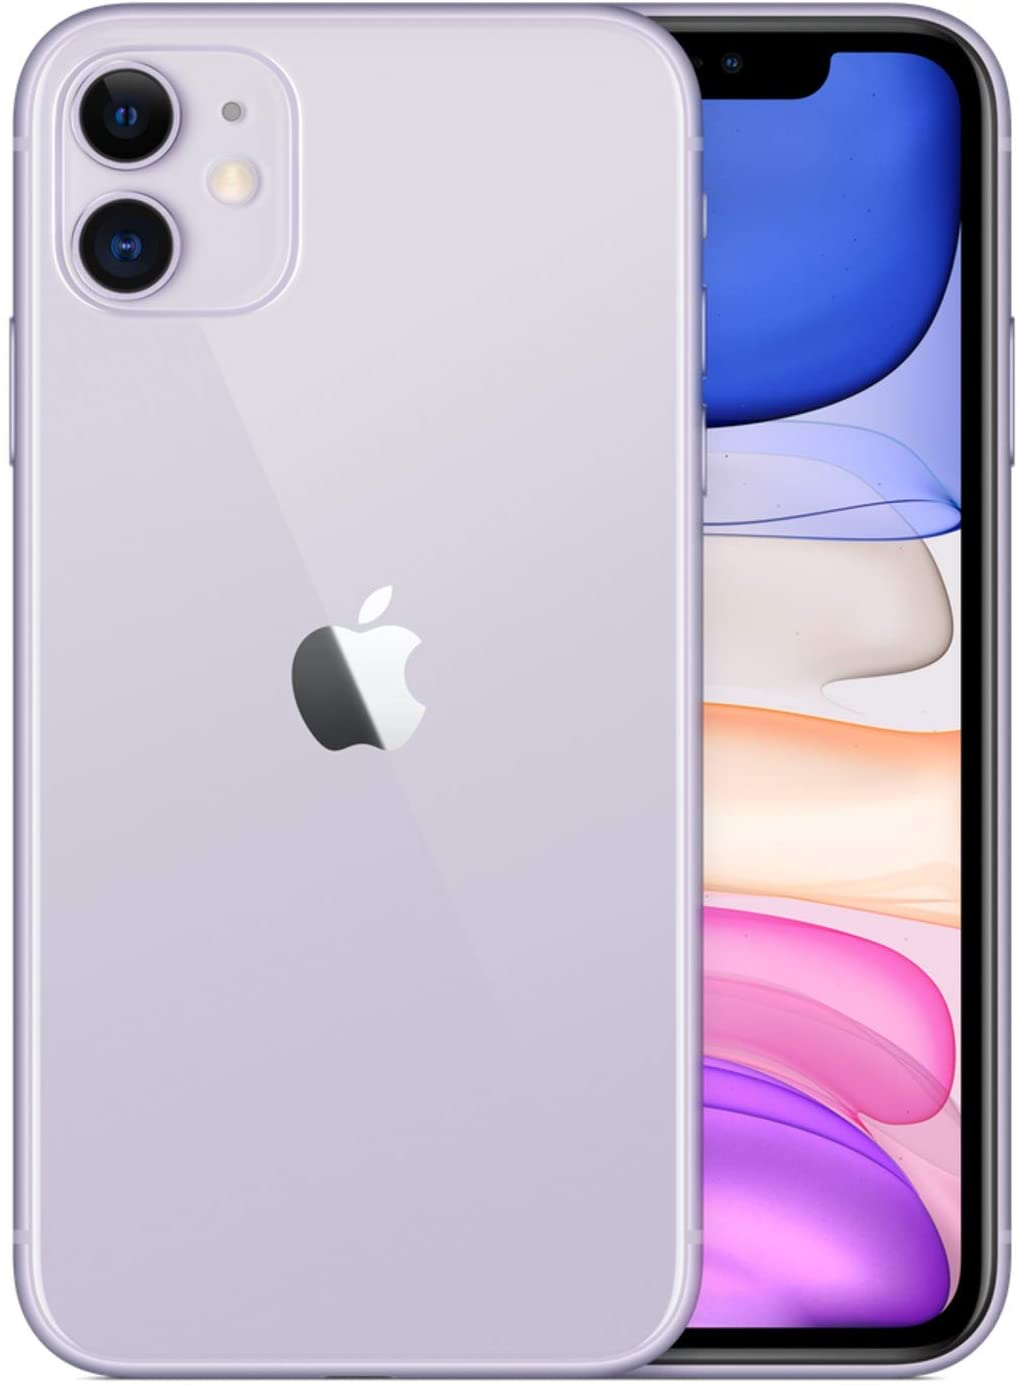 Apple iPhone 11, 64GB, Unlocked - Purple (Renewed)